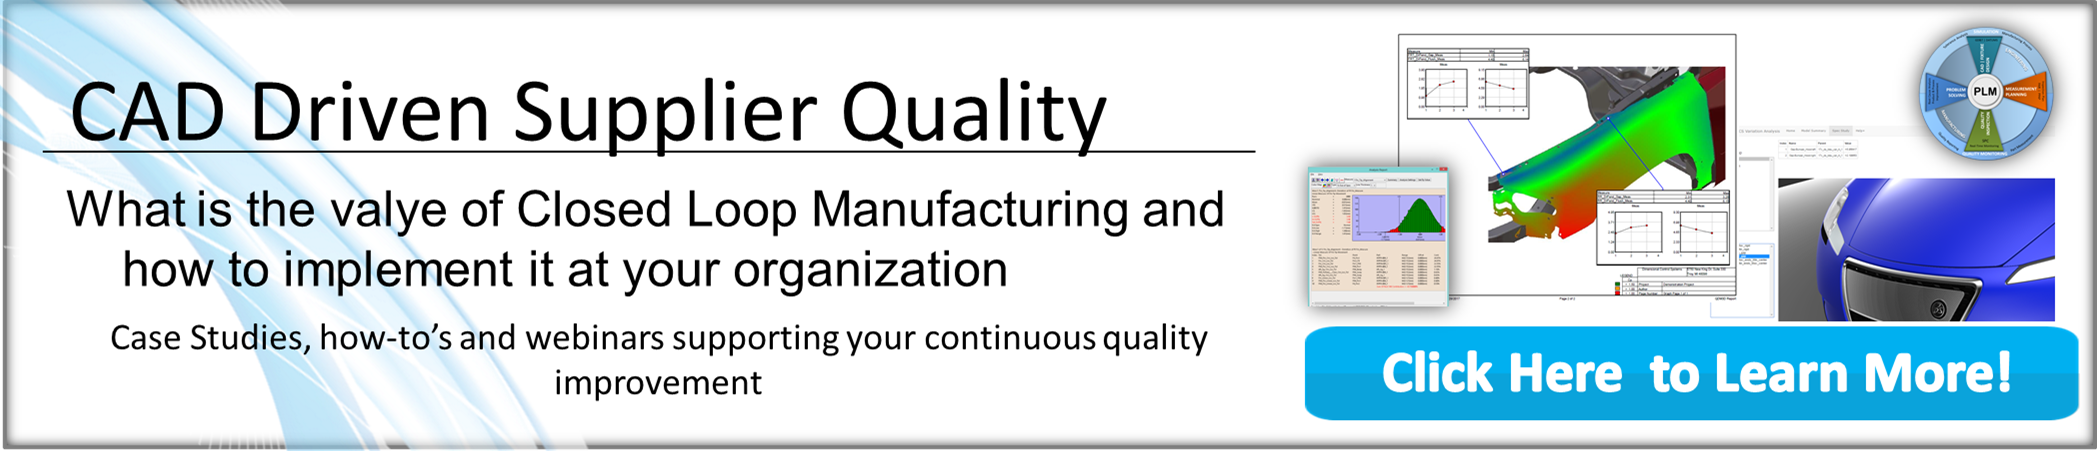 Learn more about Cad Driven Supplier Quality